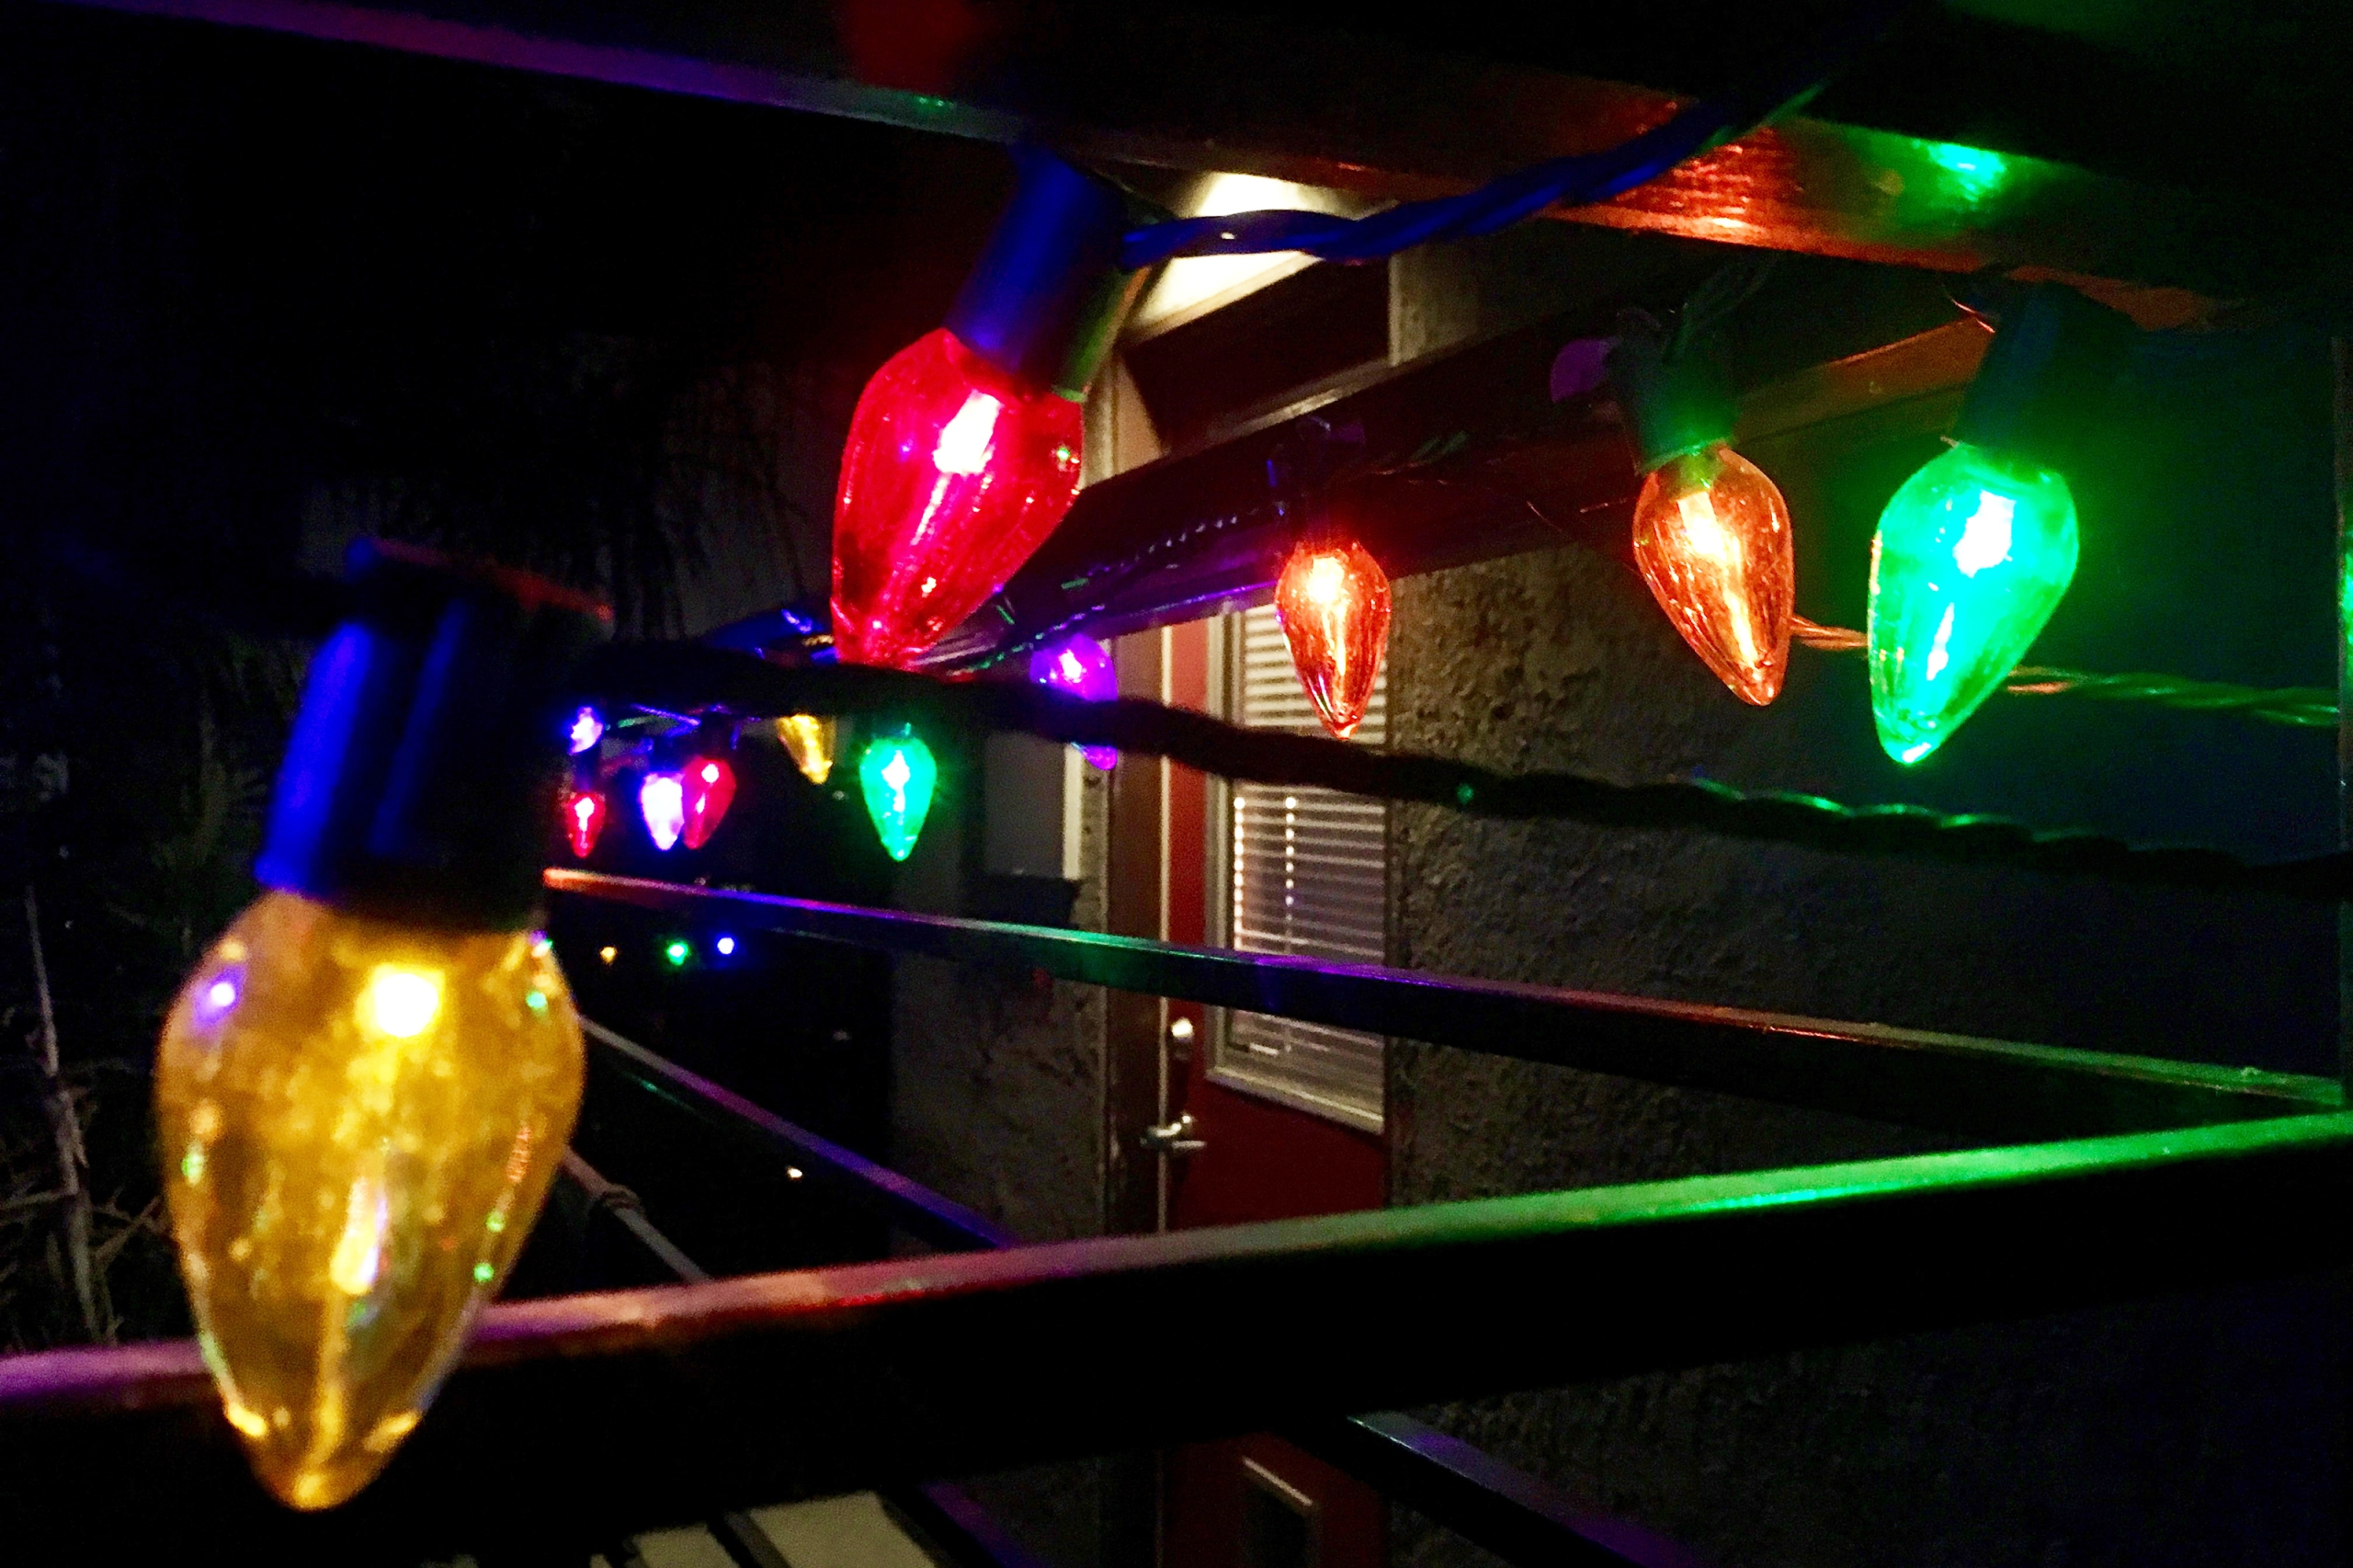 Close up of multi-colored Christmas lights on railing